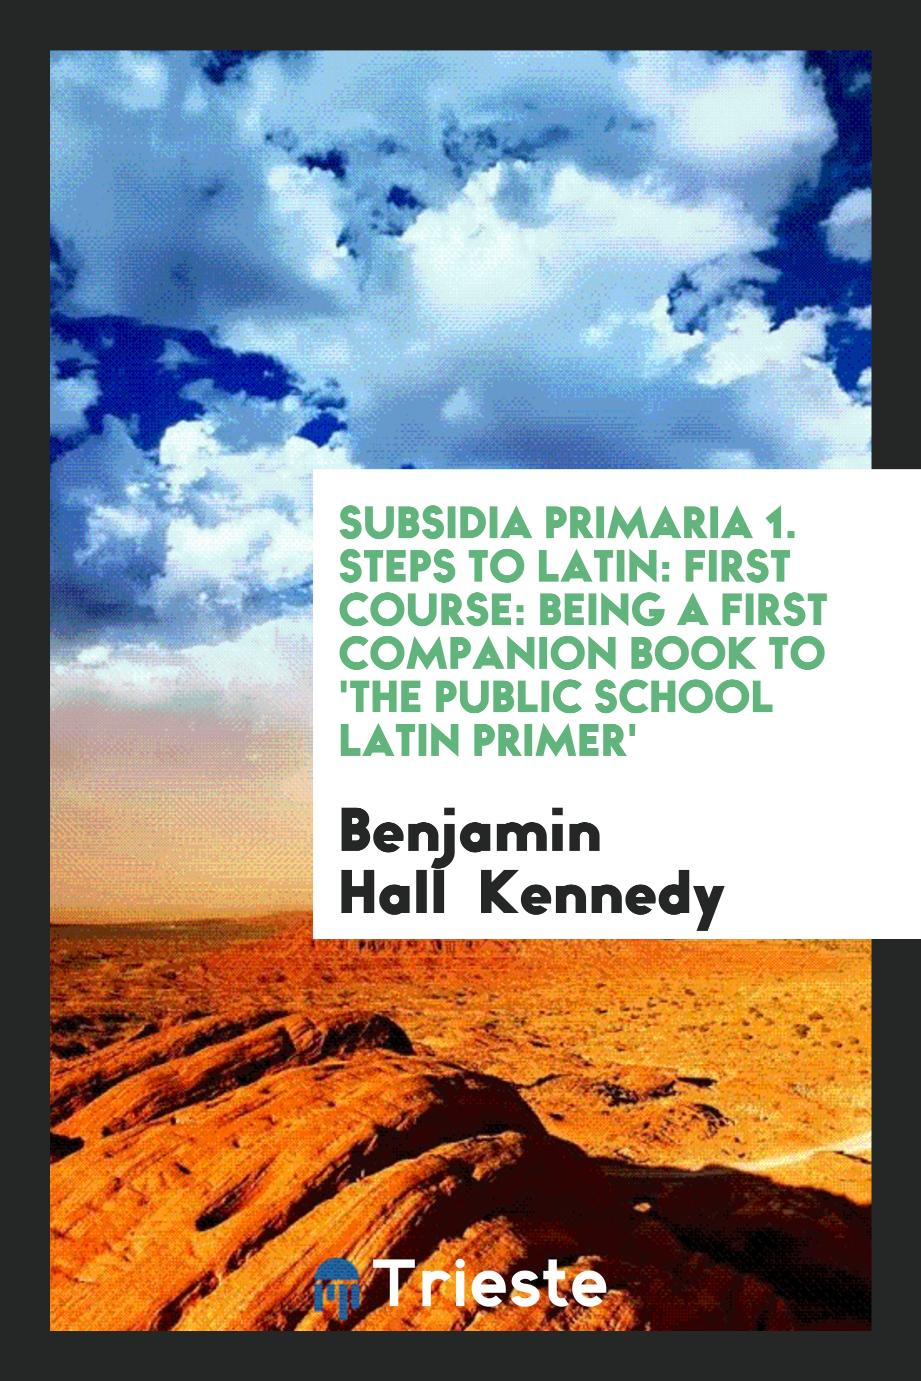 Subsidia Primaria 1. Steps to Latin: First Course: Being a First Companion Book to 'The Public School Latin Primer'